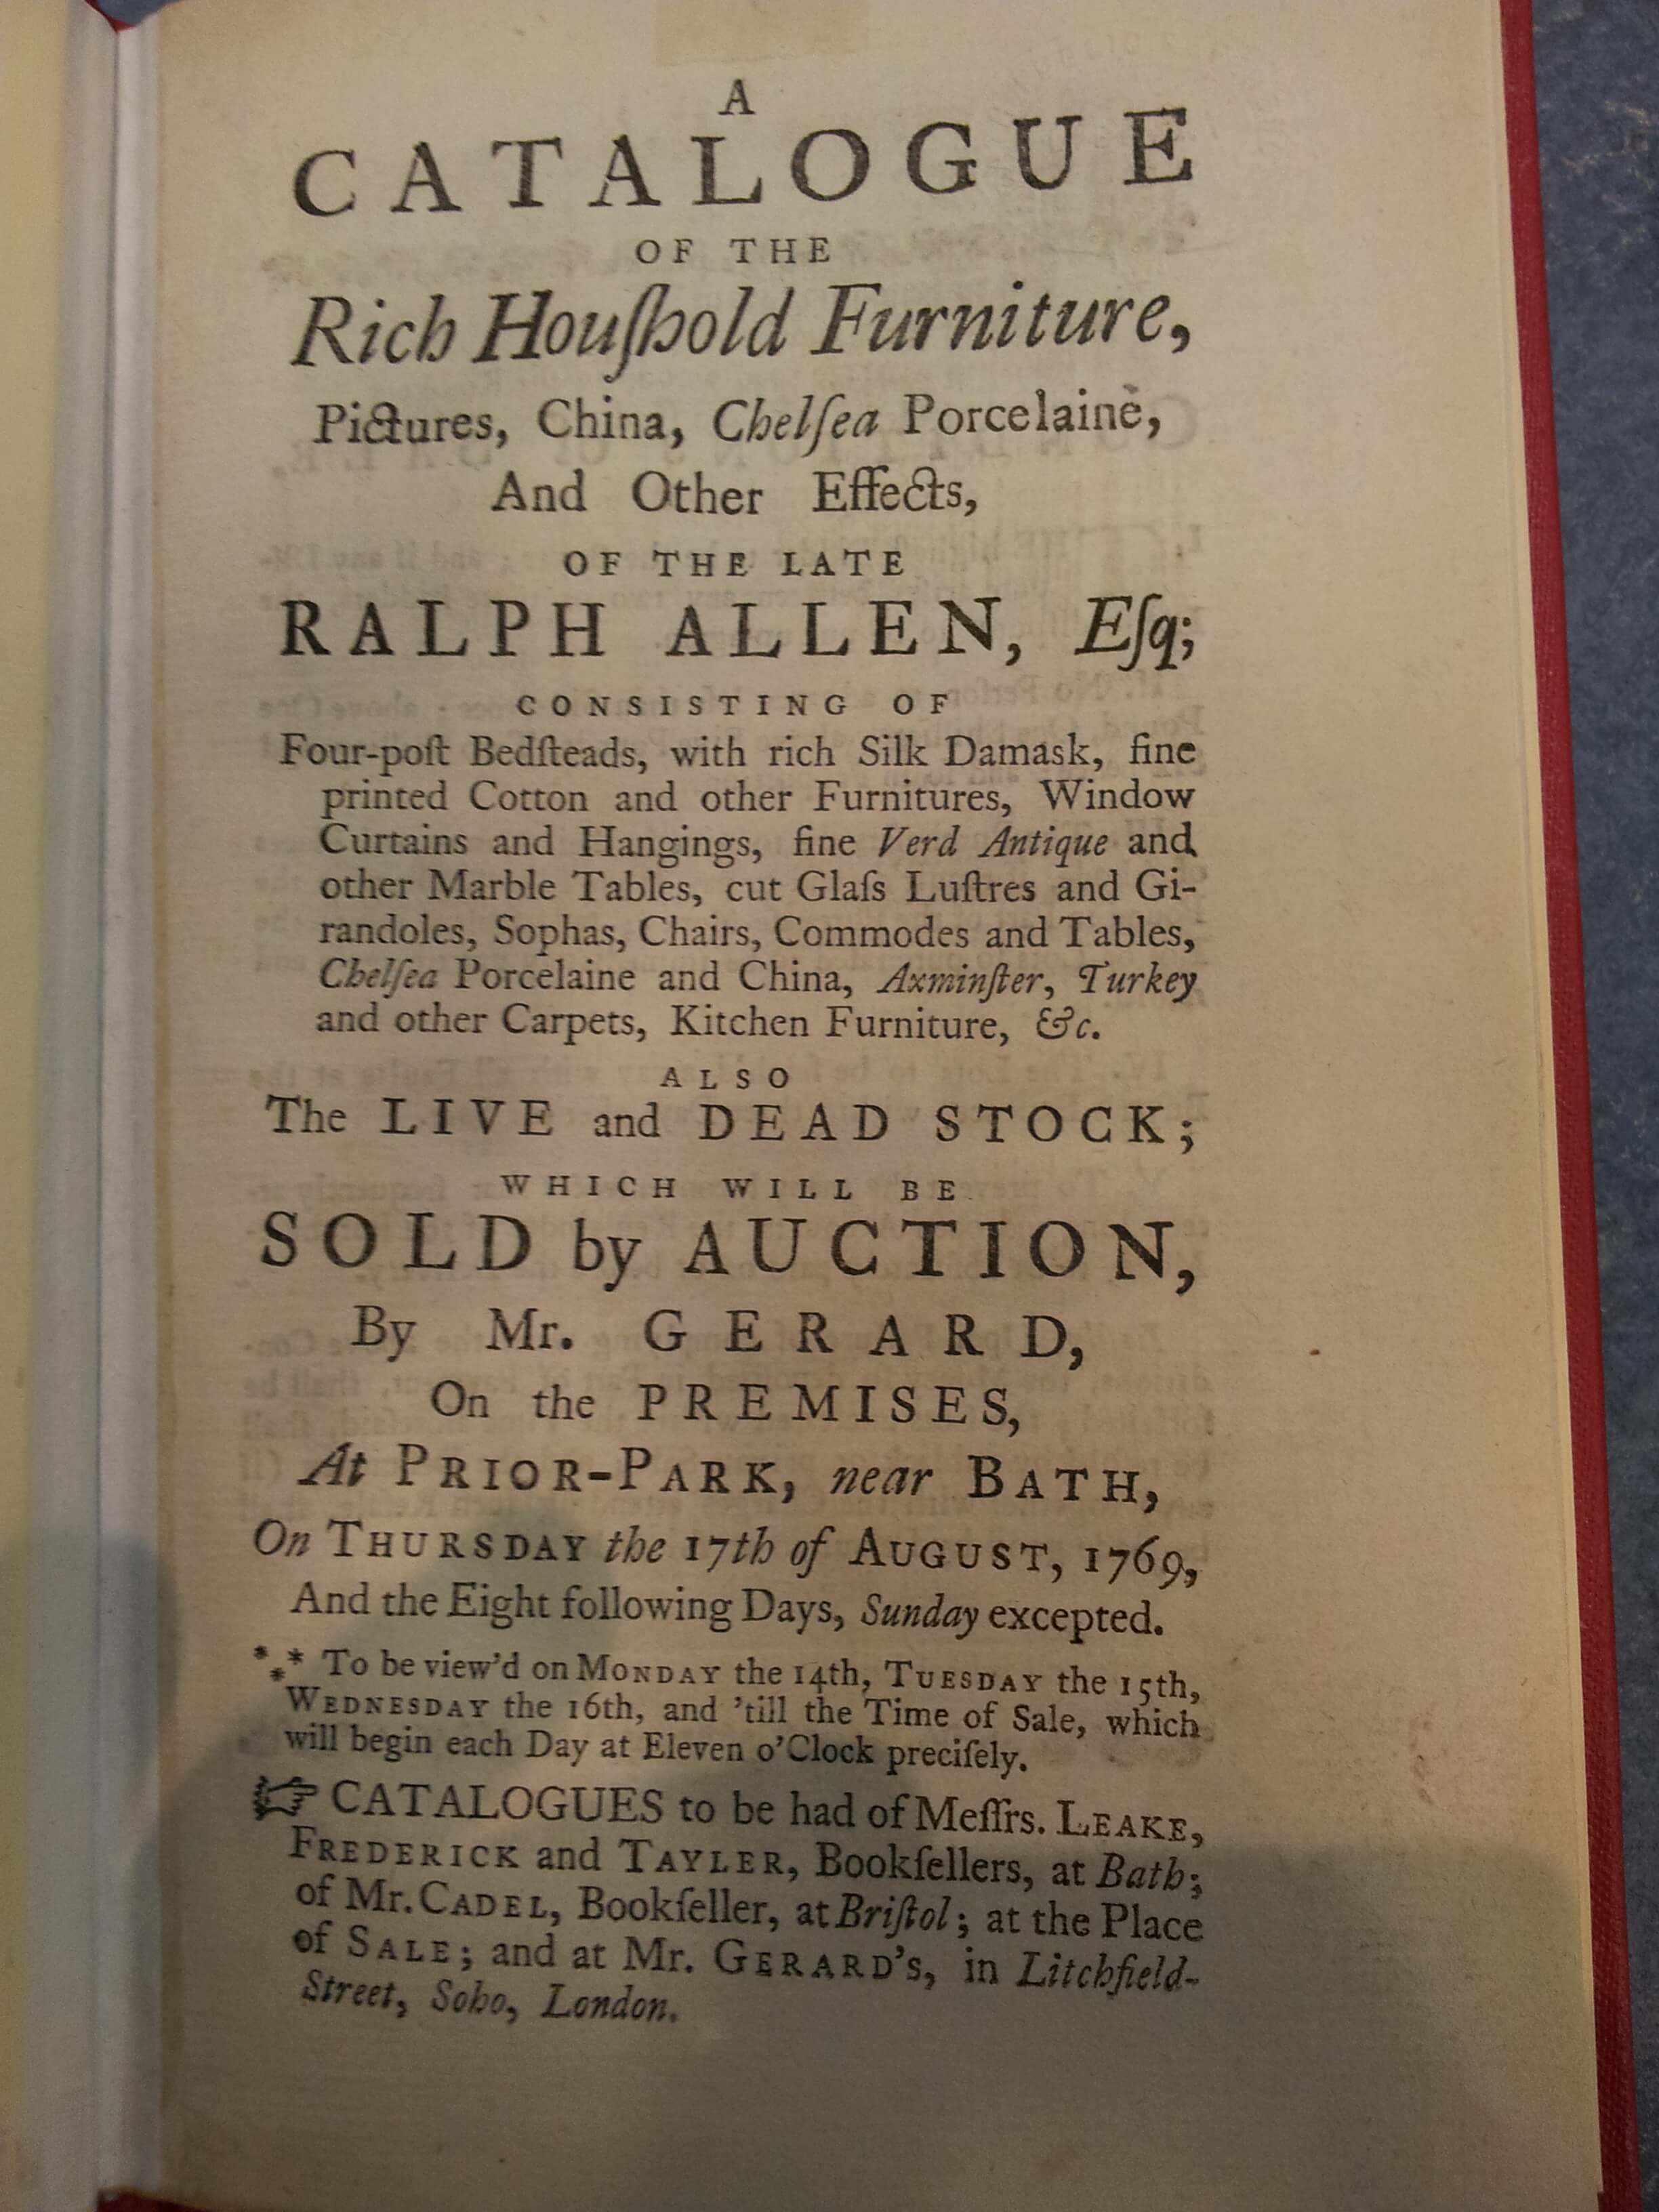 The front of the 1769 Prior Park sale catalogue